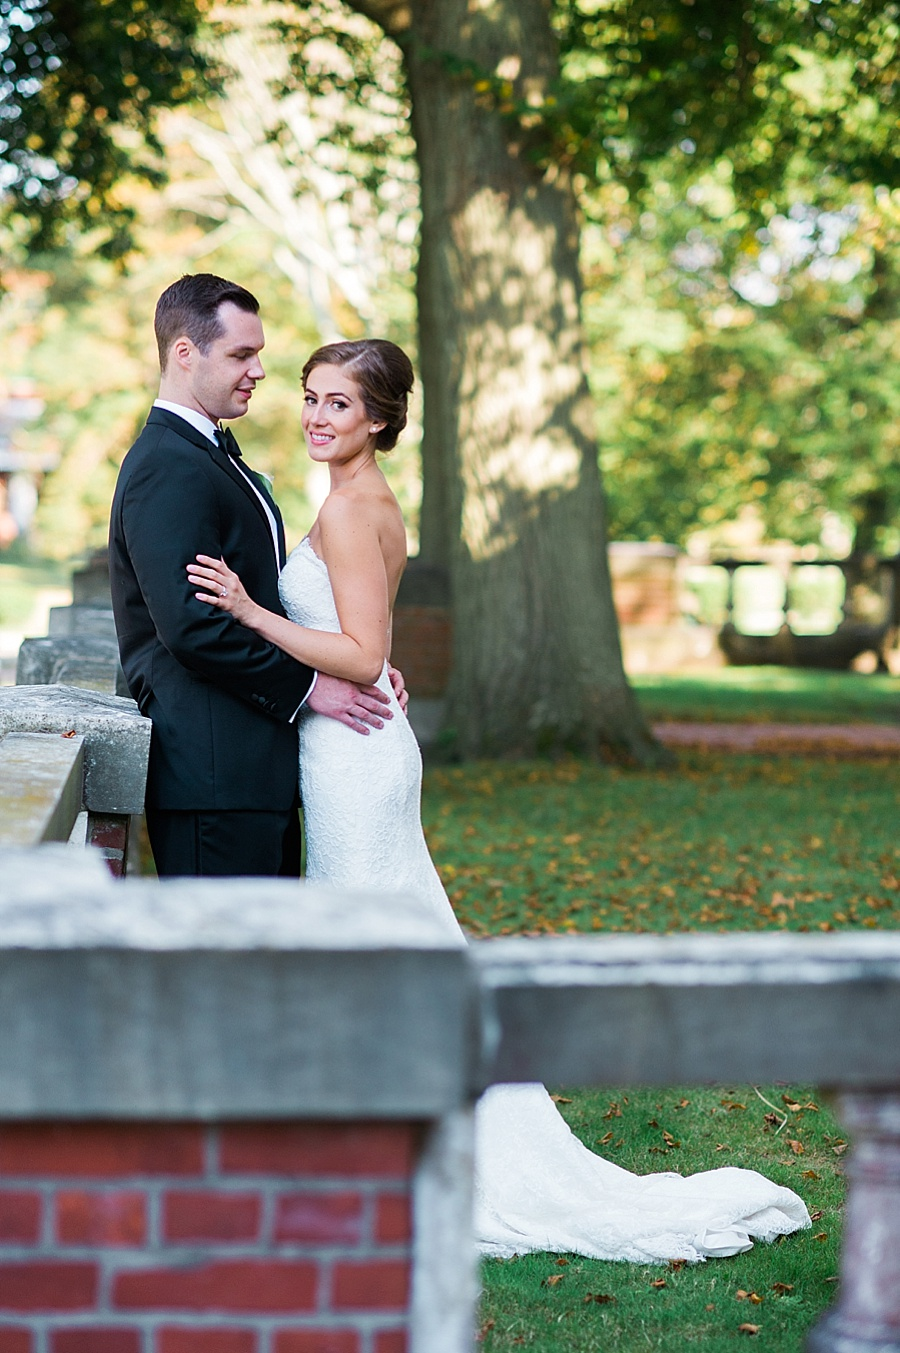 Bourne_Mansion_NY_Wedding_KE_019.jpg